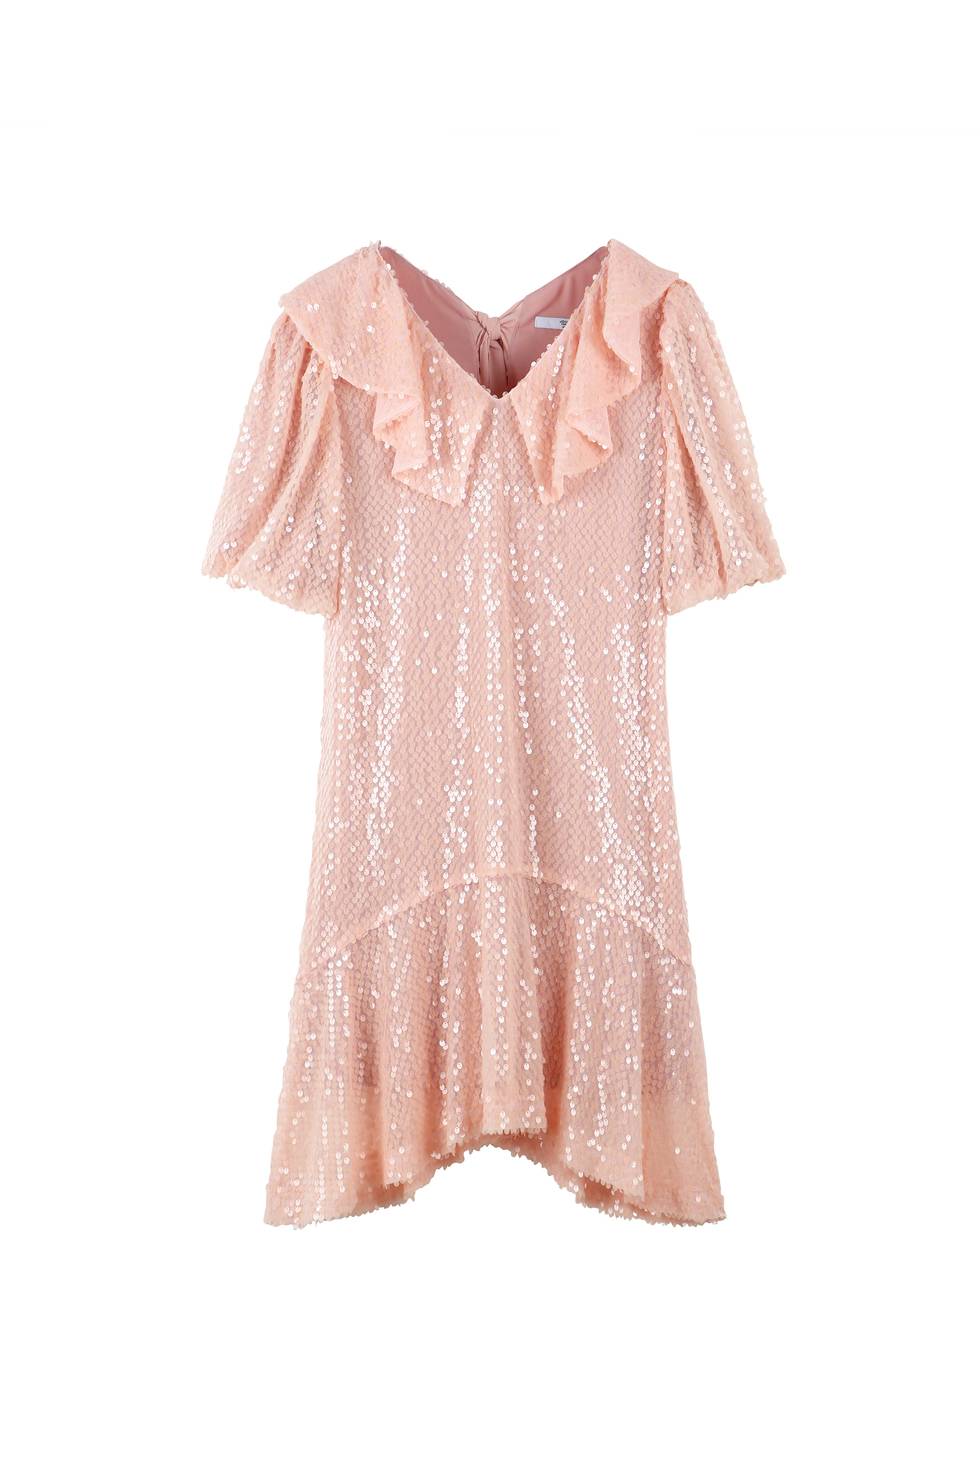 SEQUINED MINI DRESS - PINK